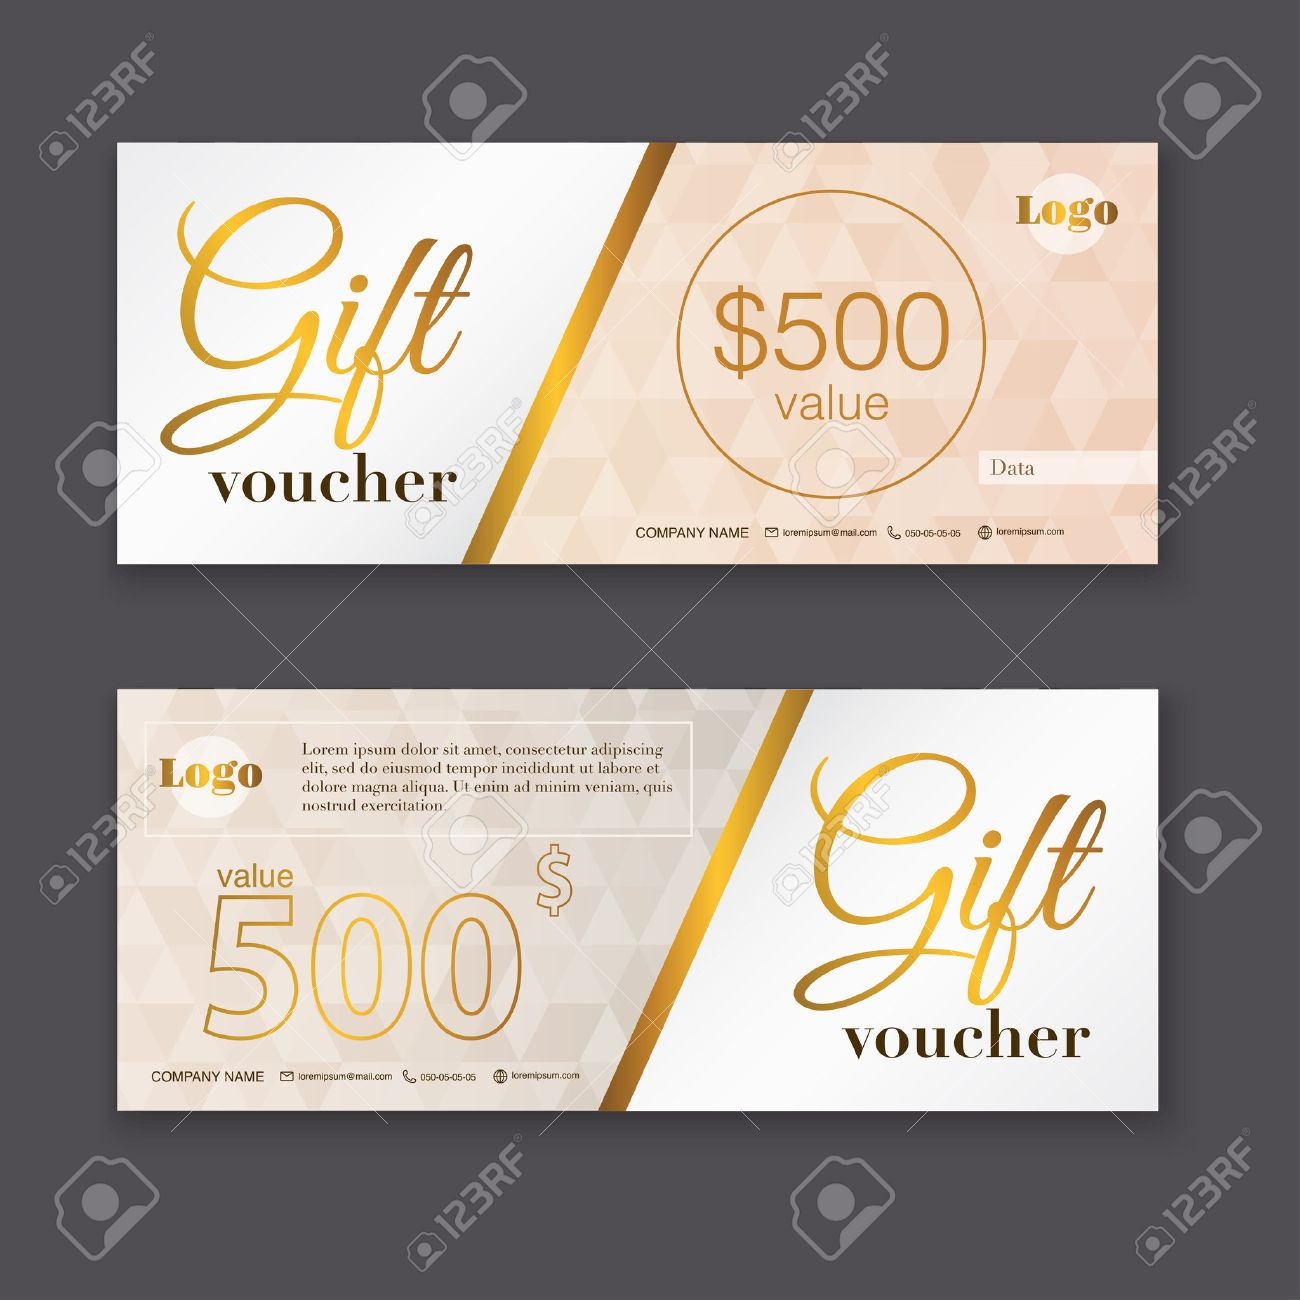 Gift voucher template with gold pattern gift certificate gift voucher template with gold pattern gift certificate background design gift coupon voucher yelopaper Images